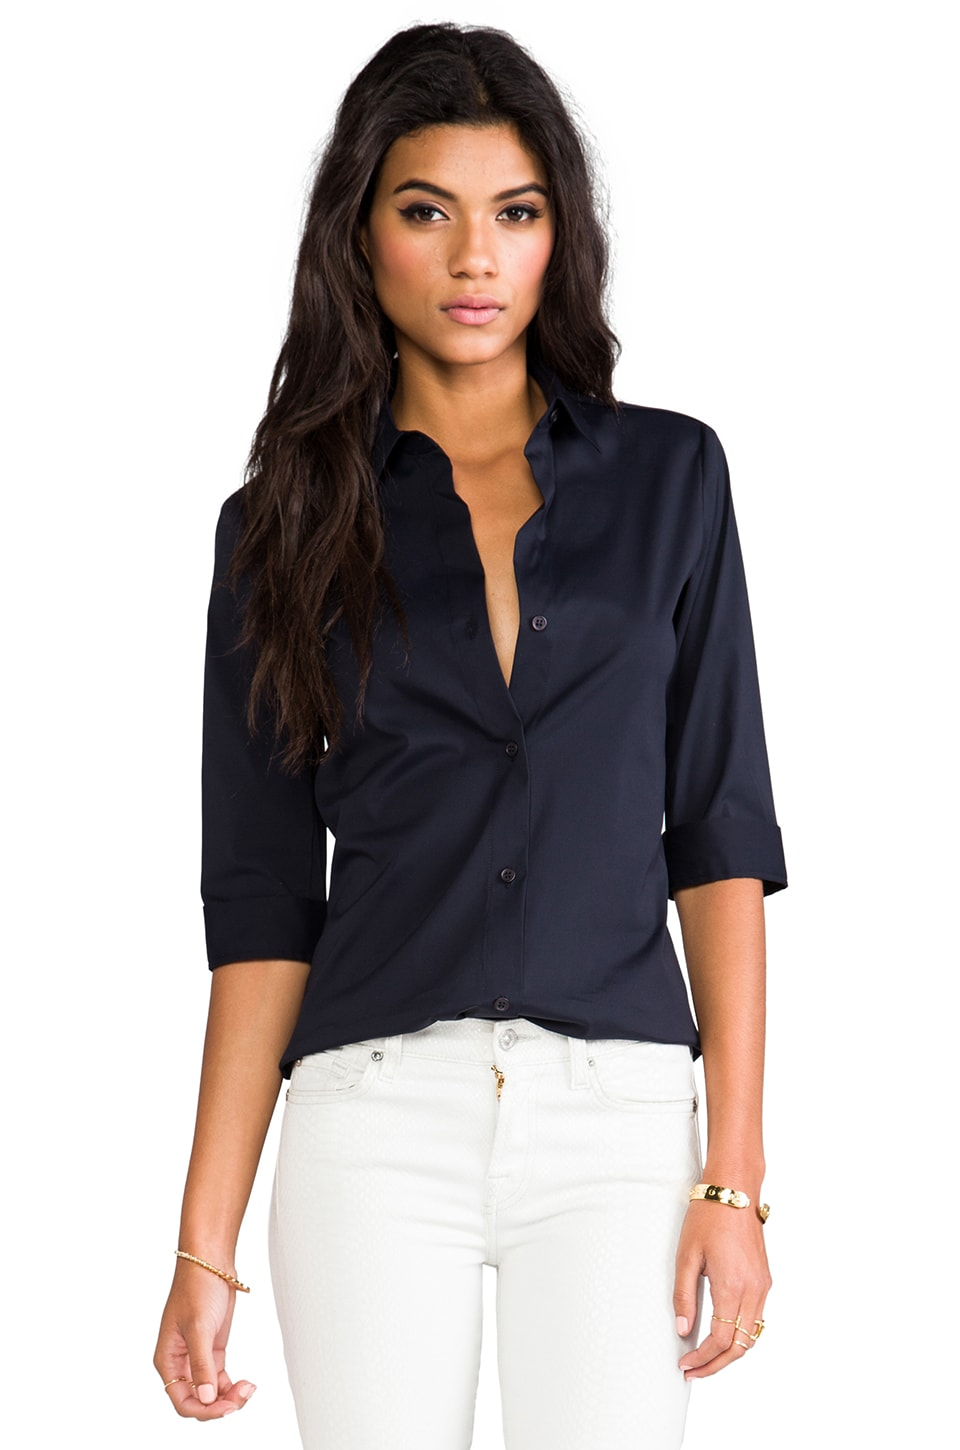 Theory Dallisa Short-Sleeve Shirt in Eclipse